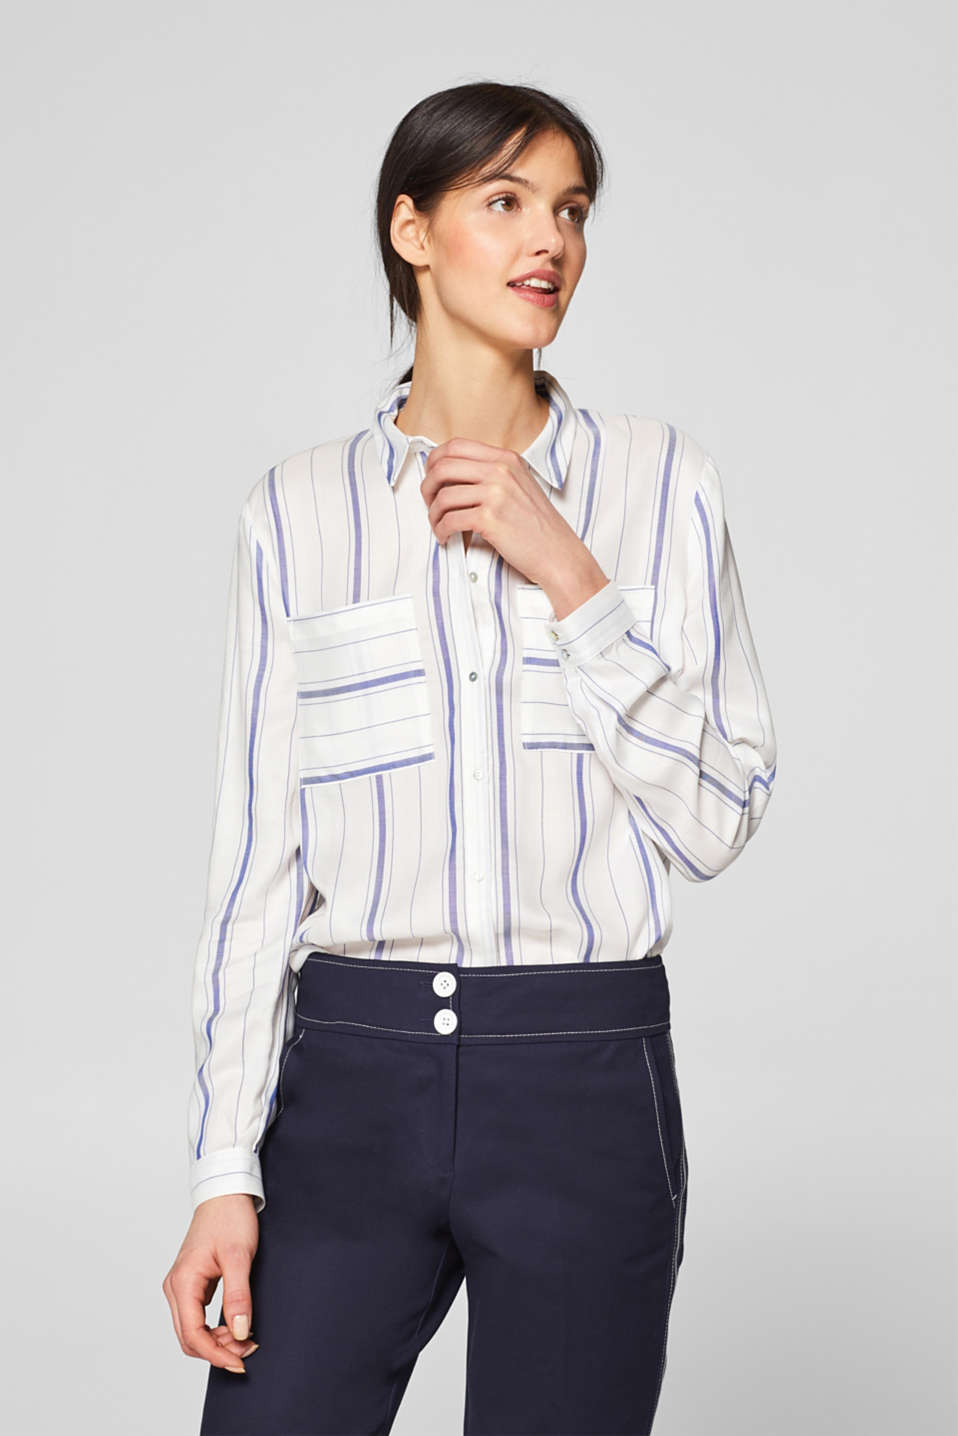 Esprit - Shirt blouse with a striped pattern